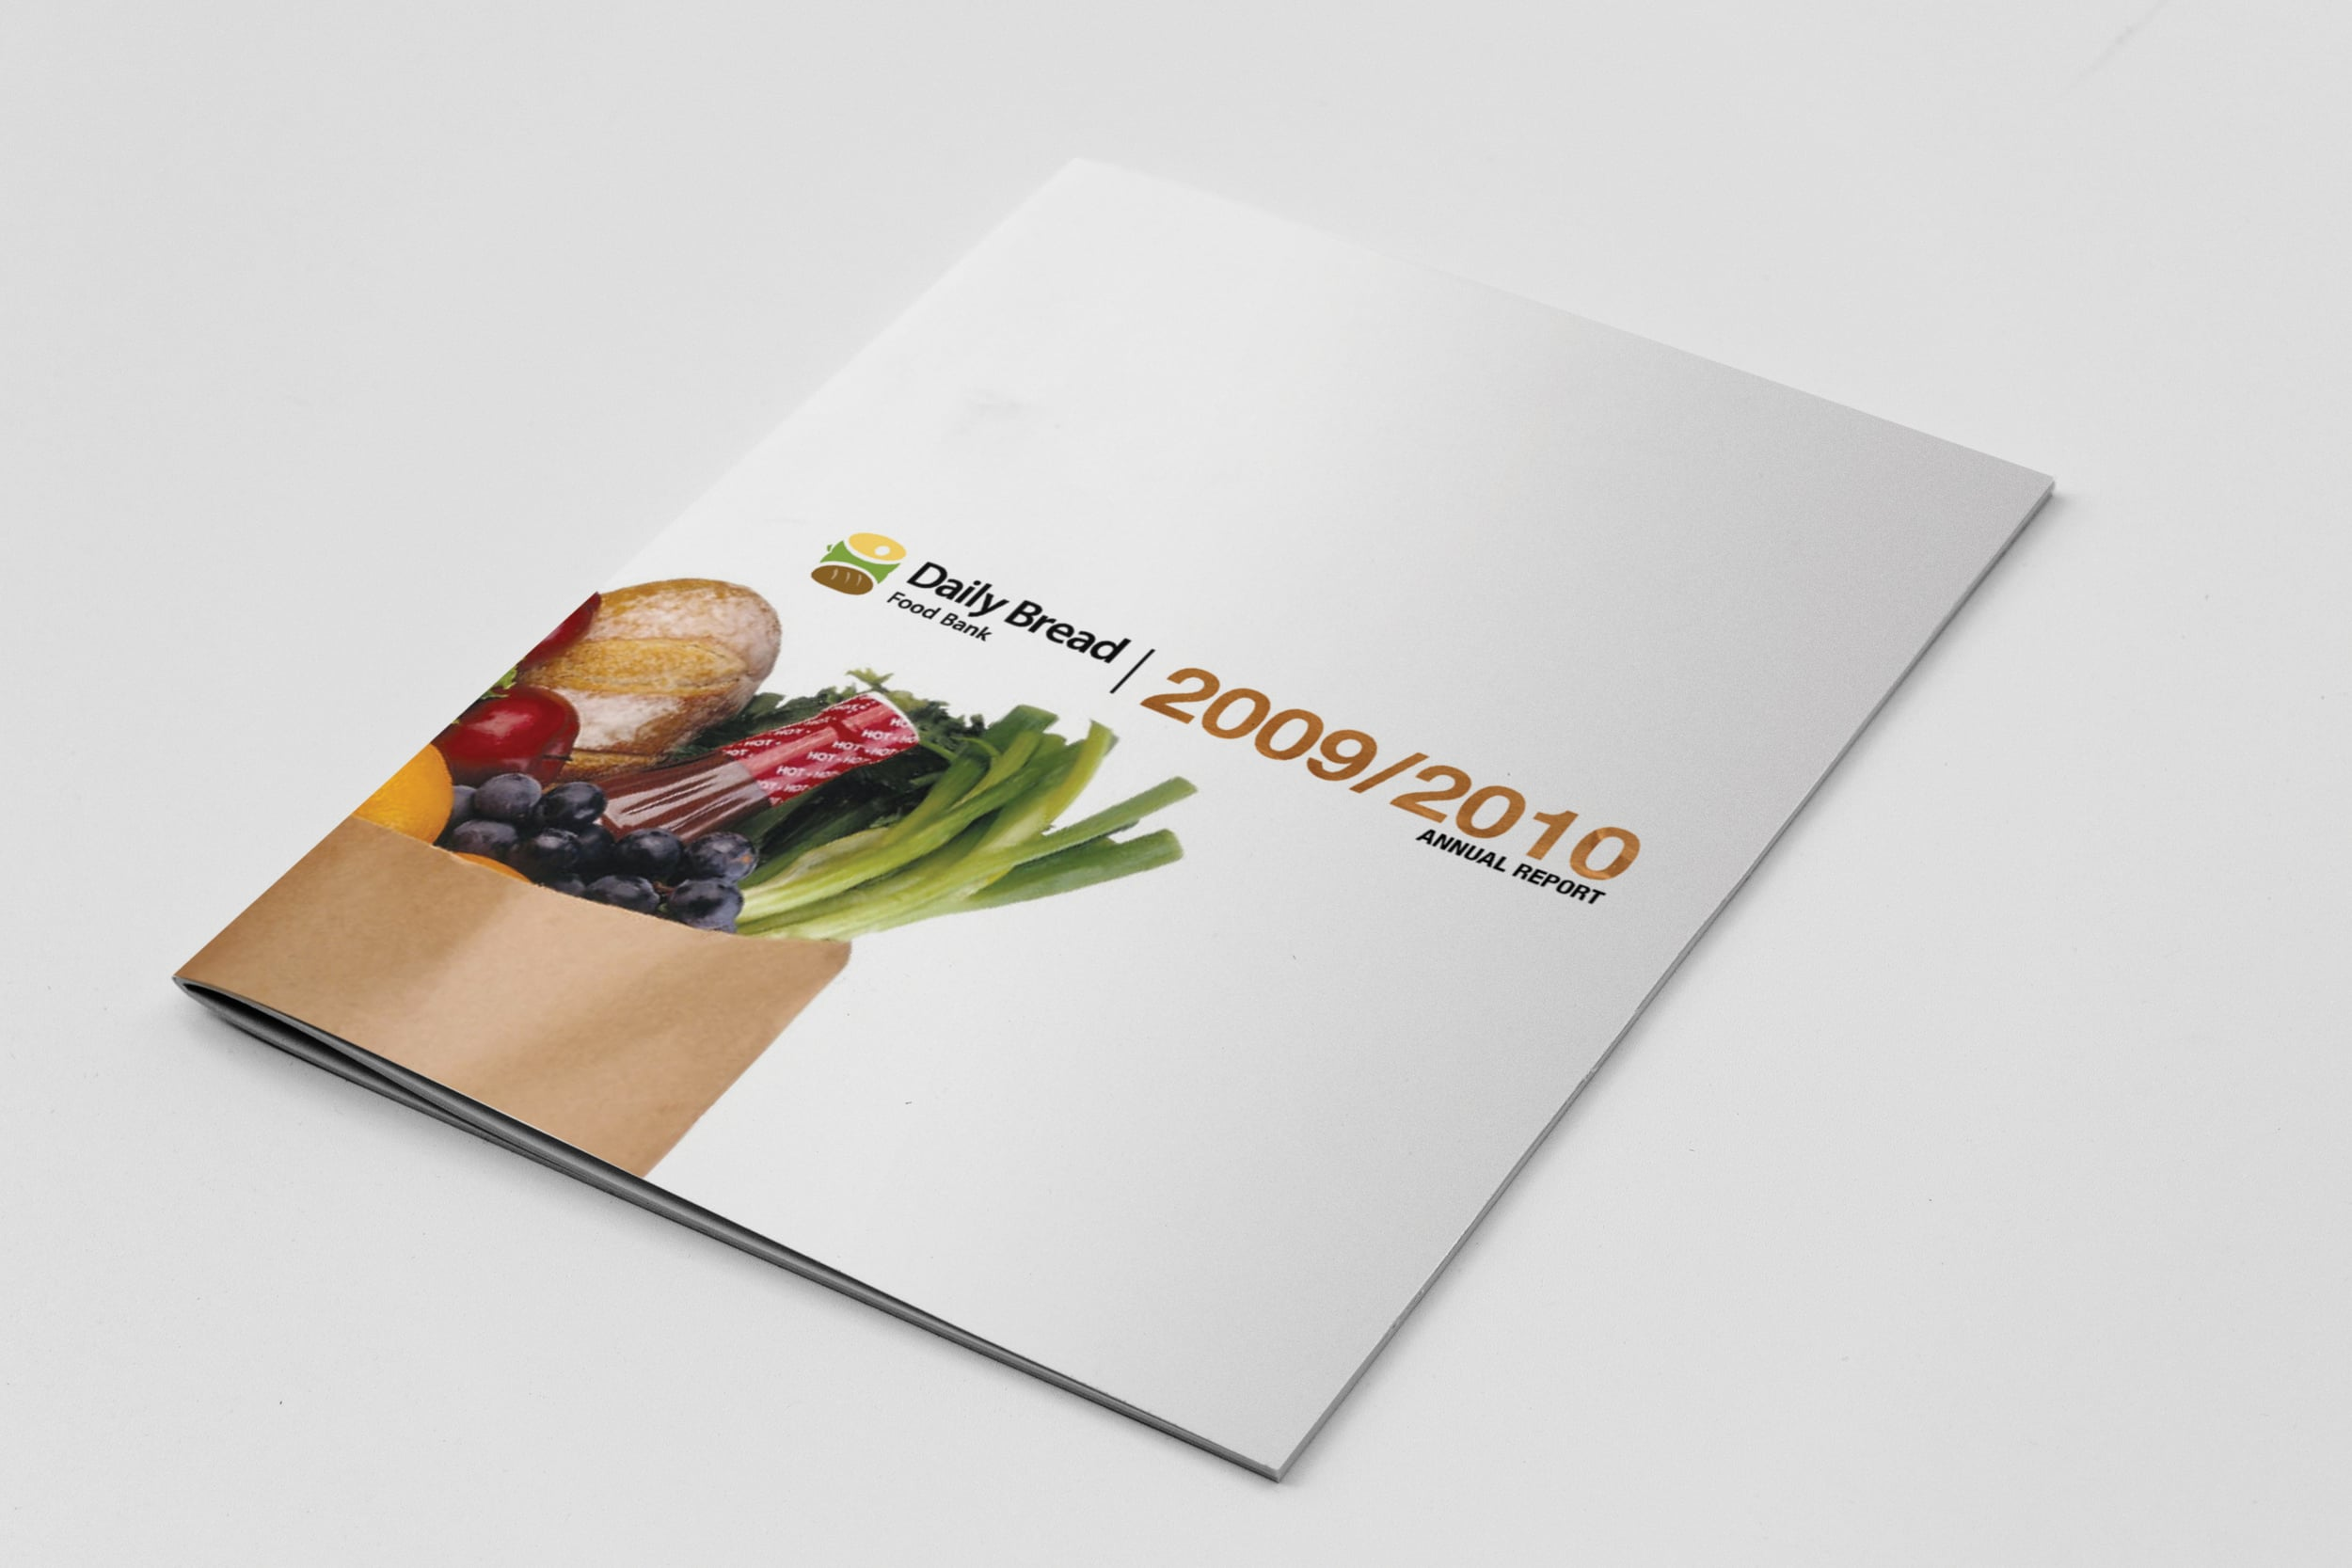 Daily Bread Food Bank Annual Report (Mock Design)